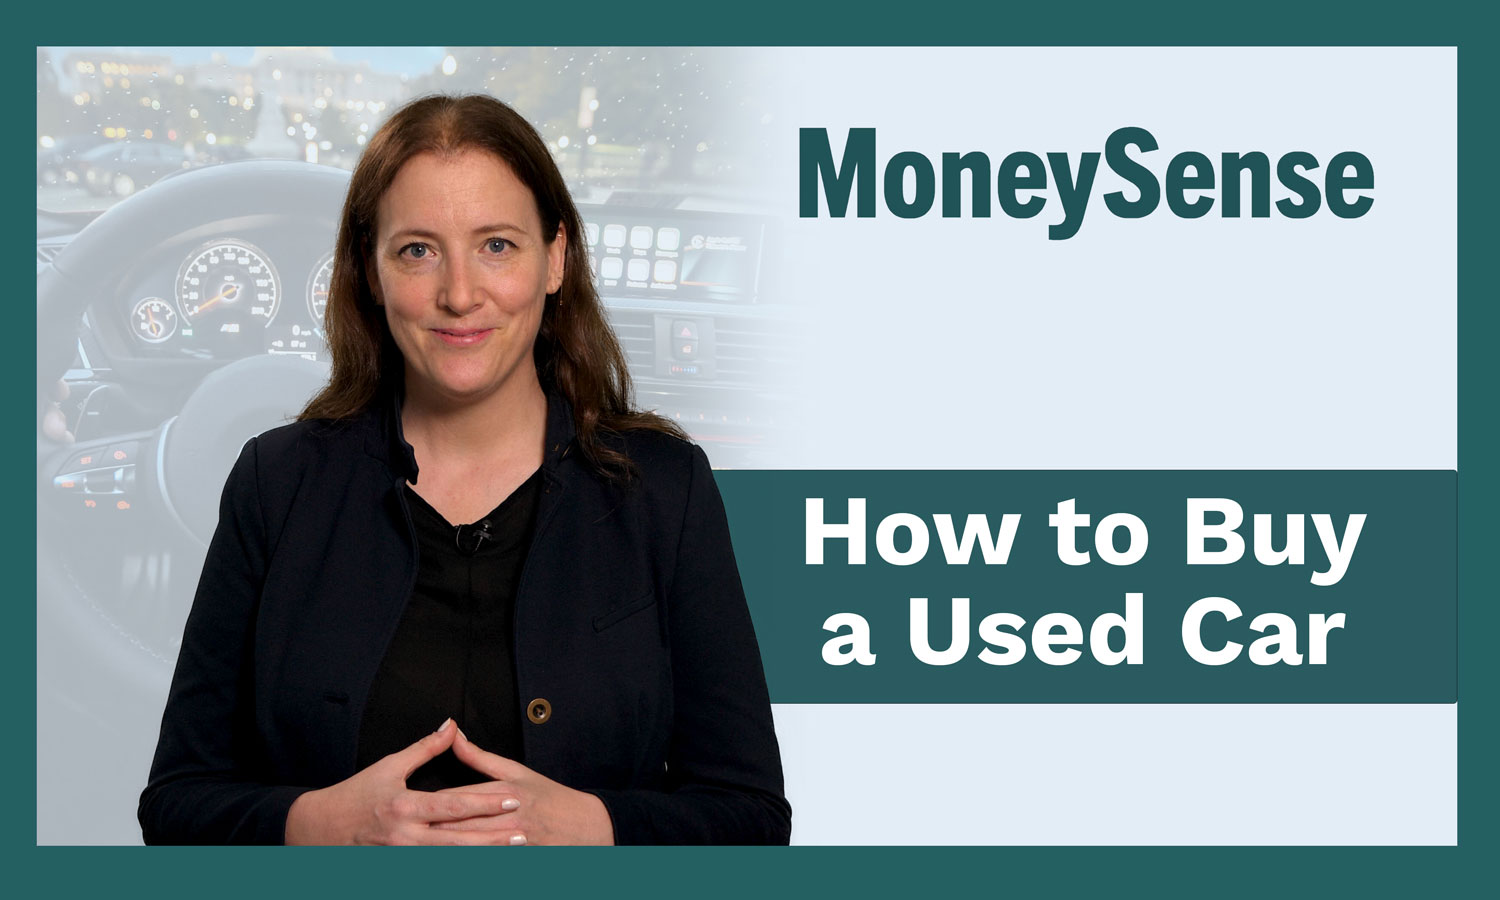 Tap to hear the video: How to buy a used car